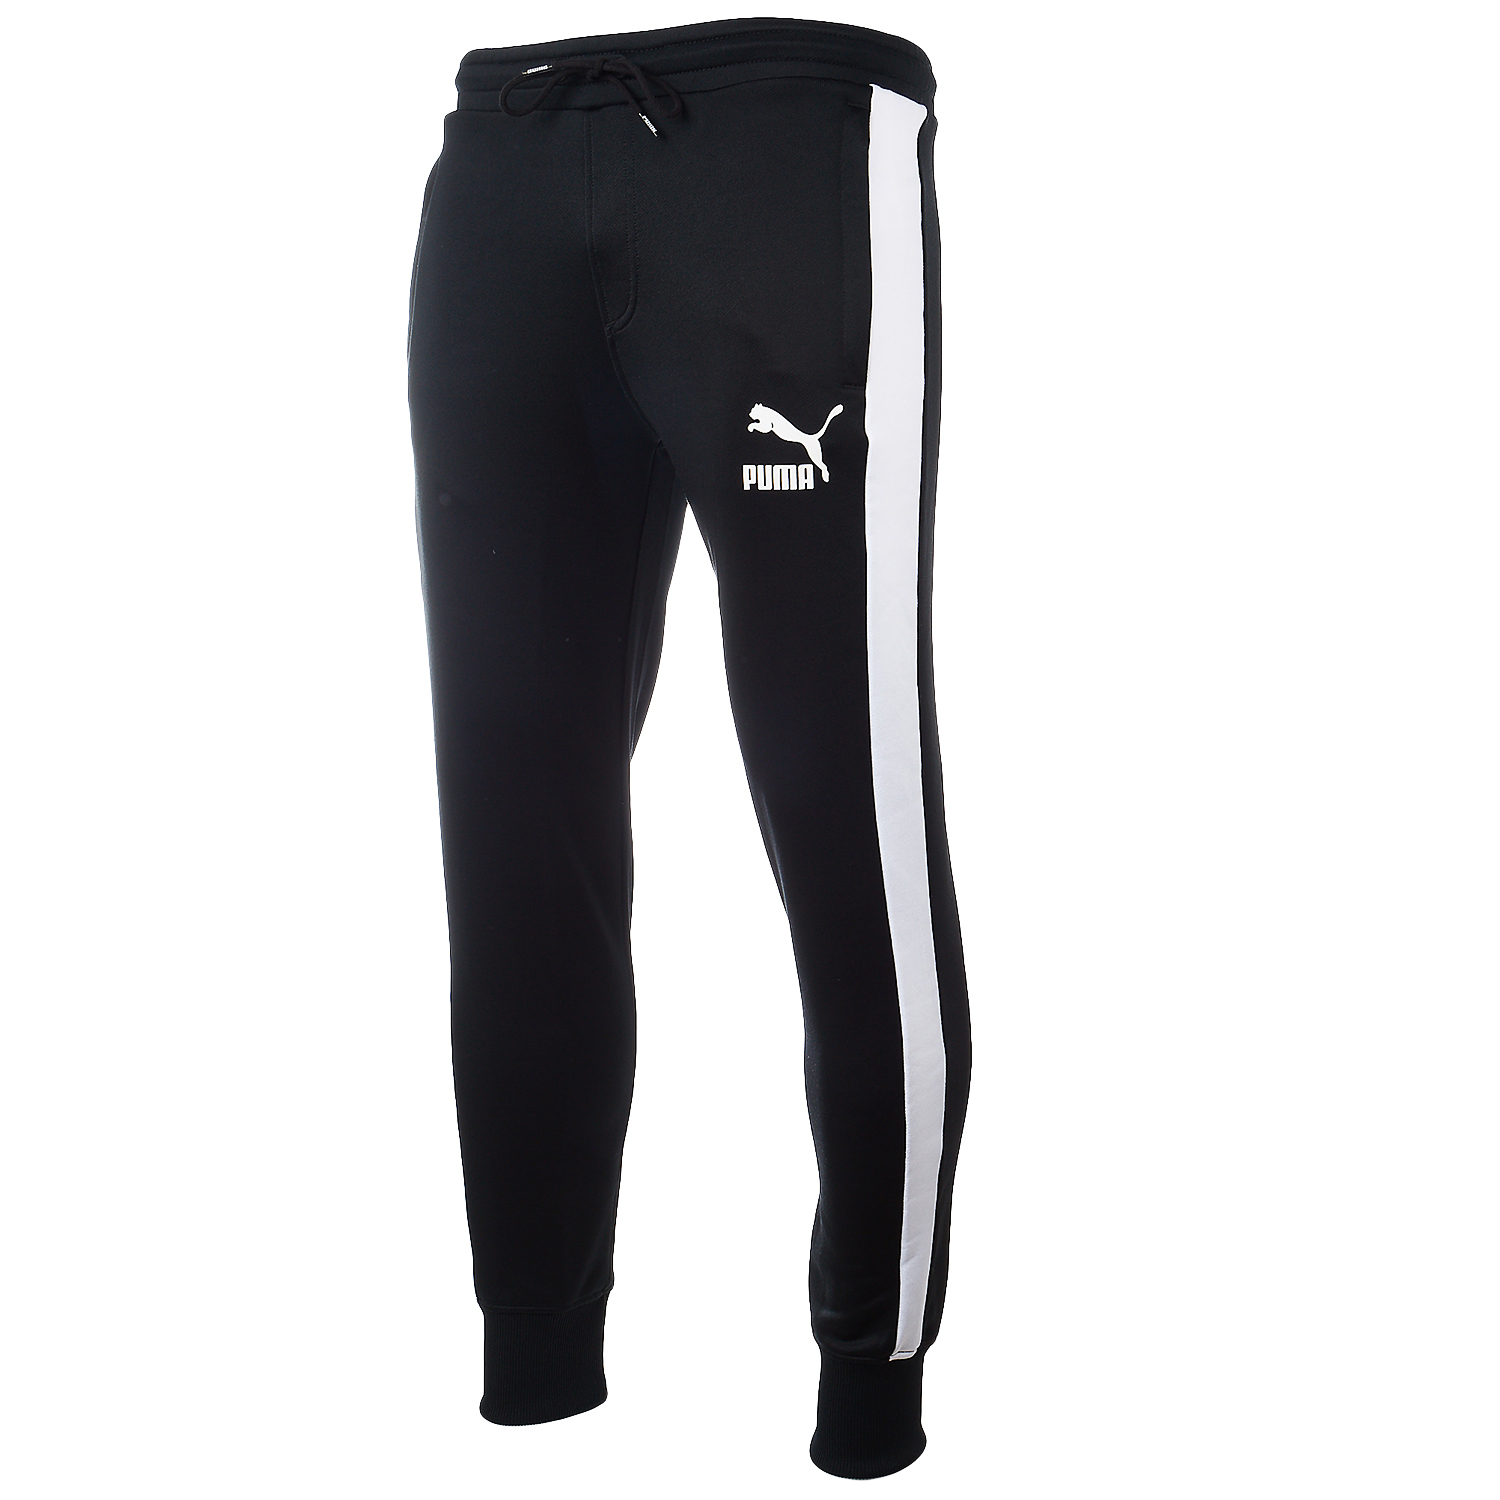 04c076a3adce Image is loading Puma-Archive-T7-Track-Pants-Mens